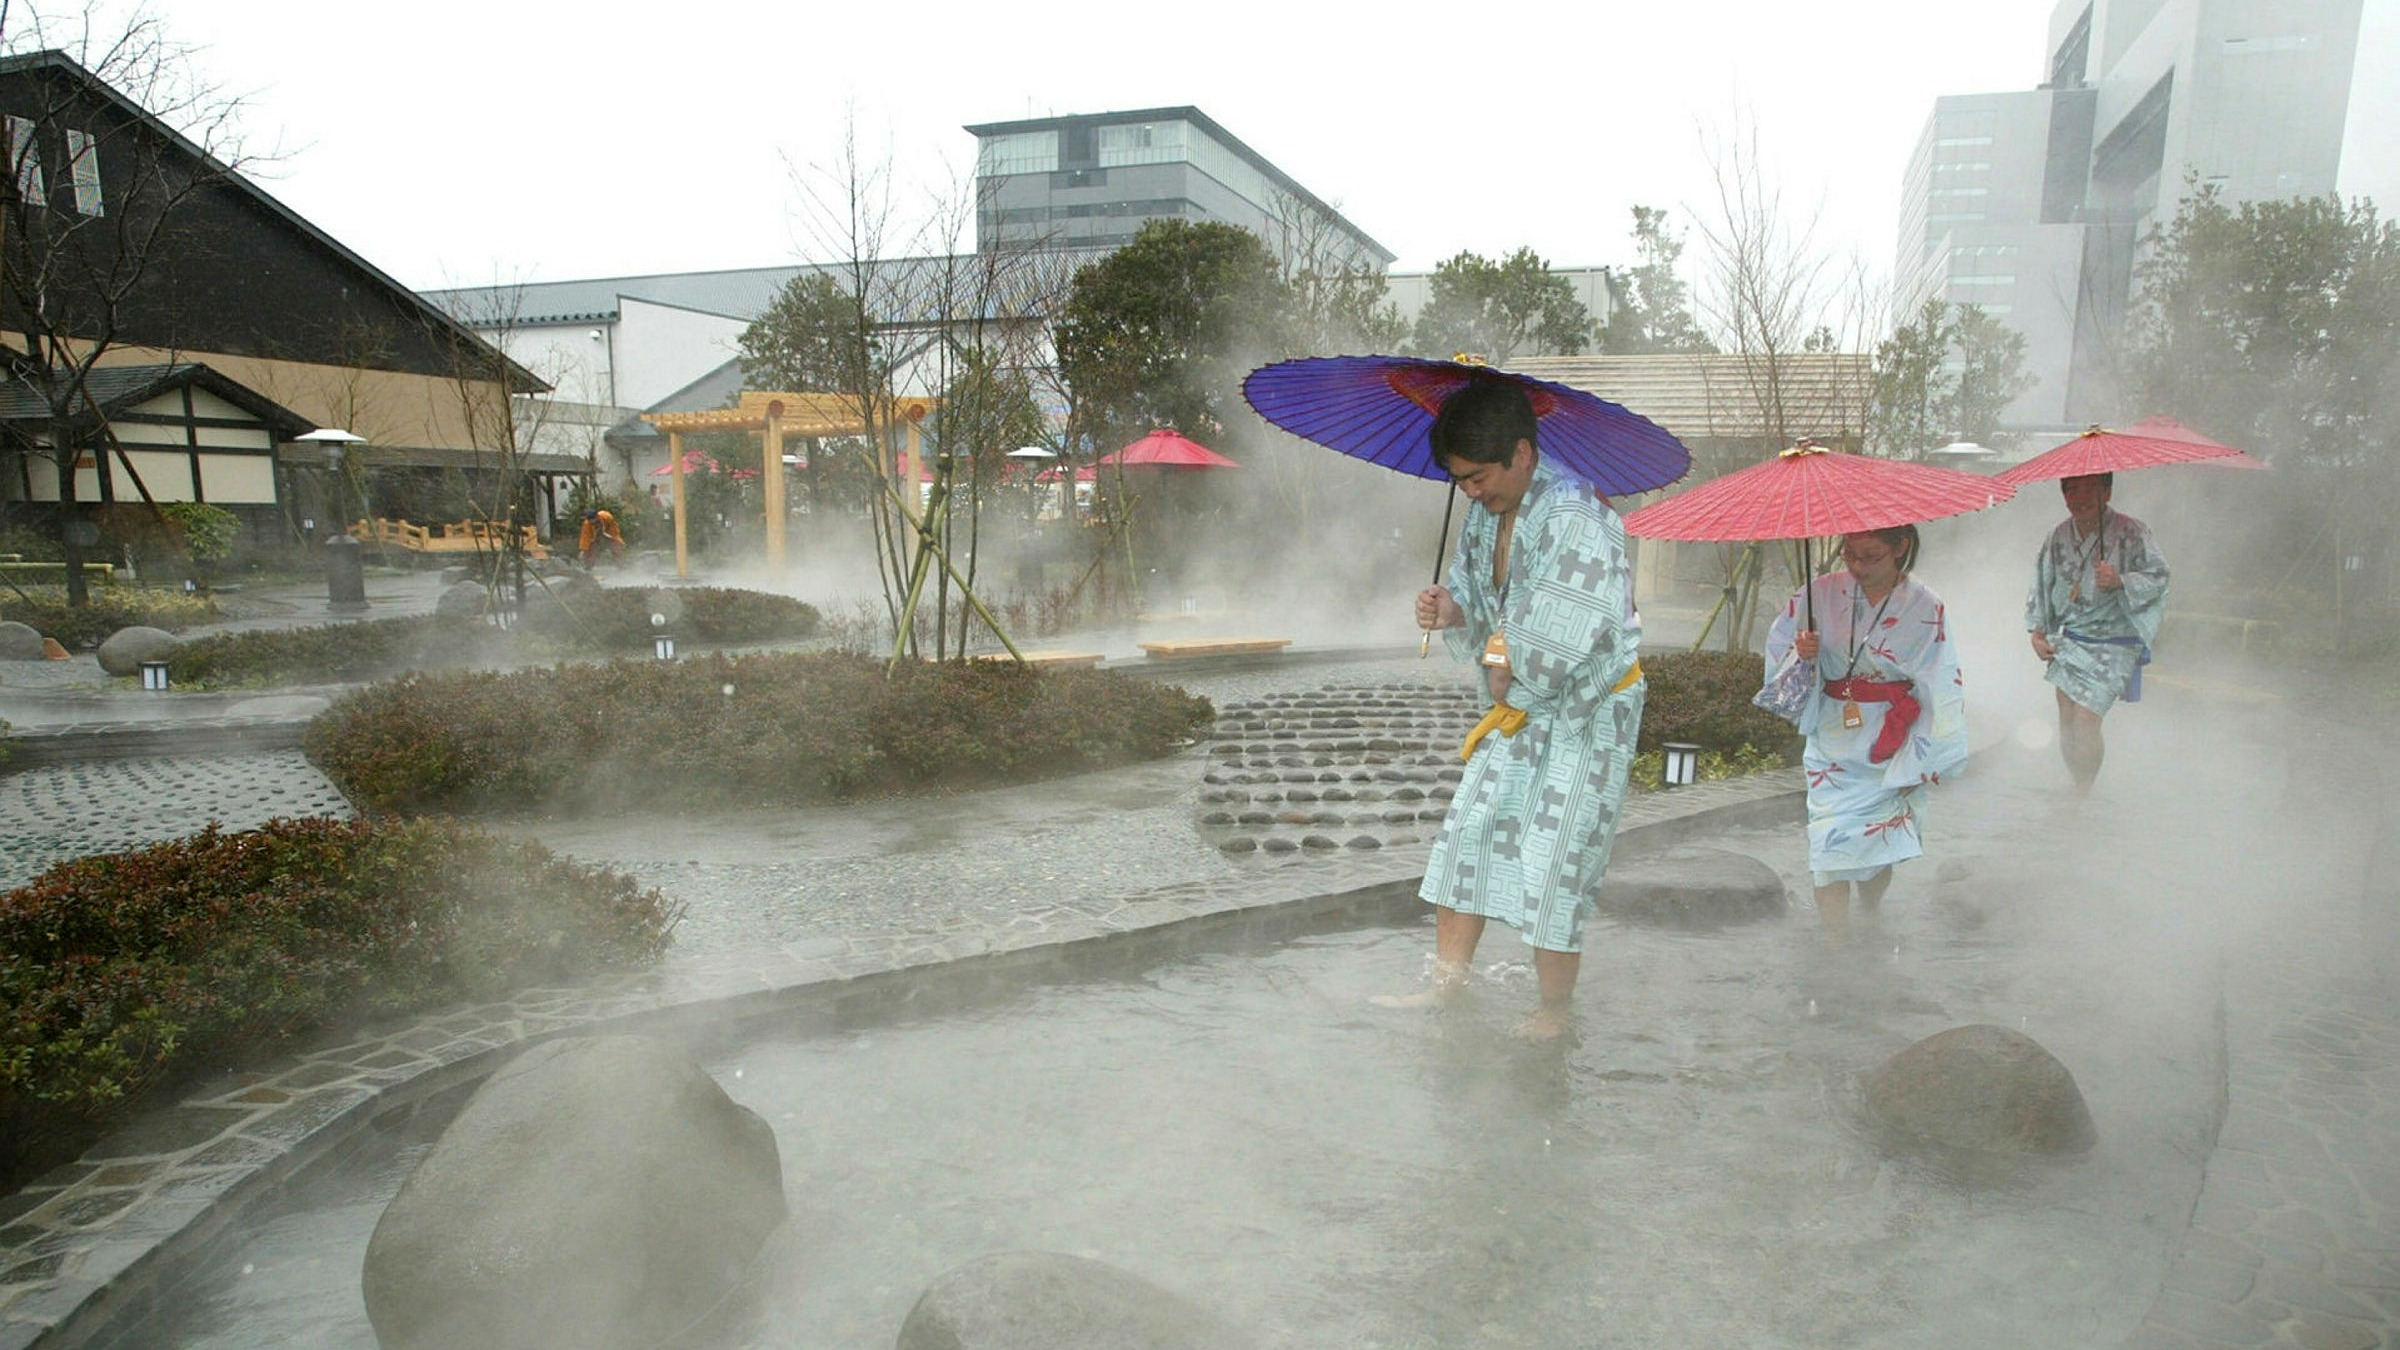 Japan declares hot springs and hotels core to national security | Financial  Times